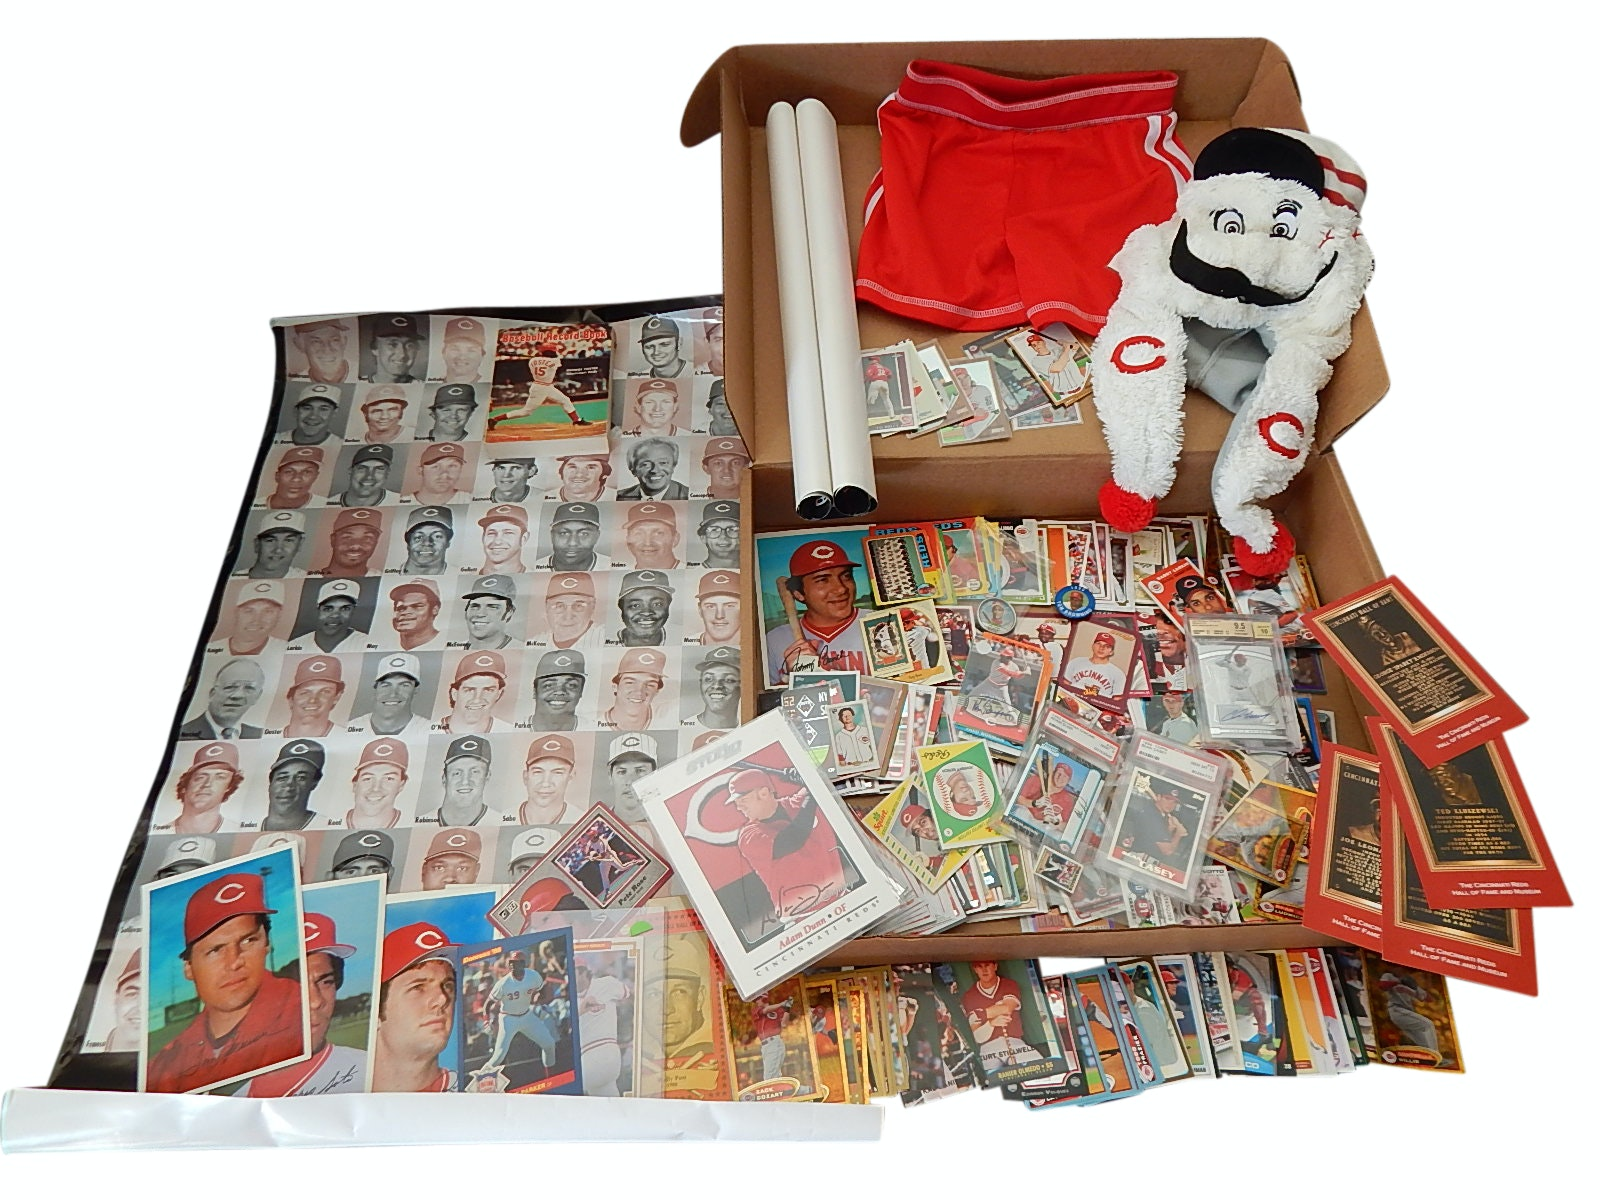 Cincinnati Reds Card and Collectibles Lot - 1970s to 2000s